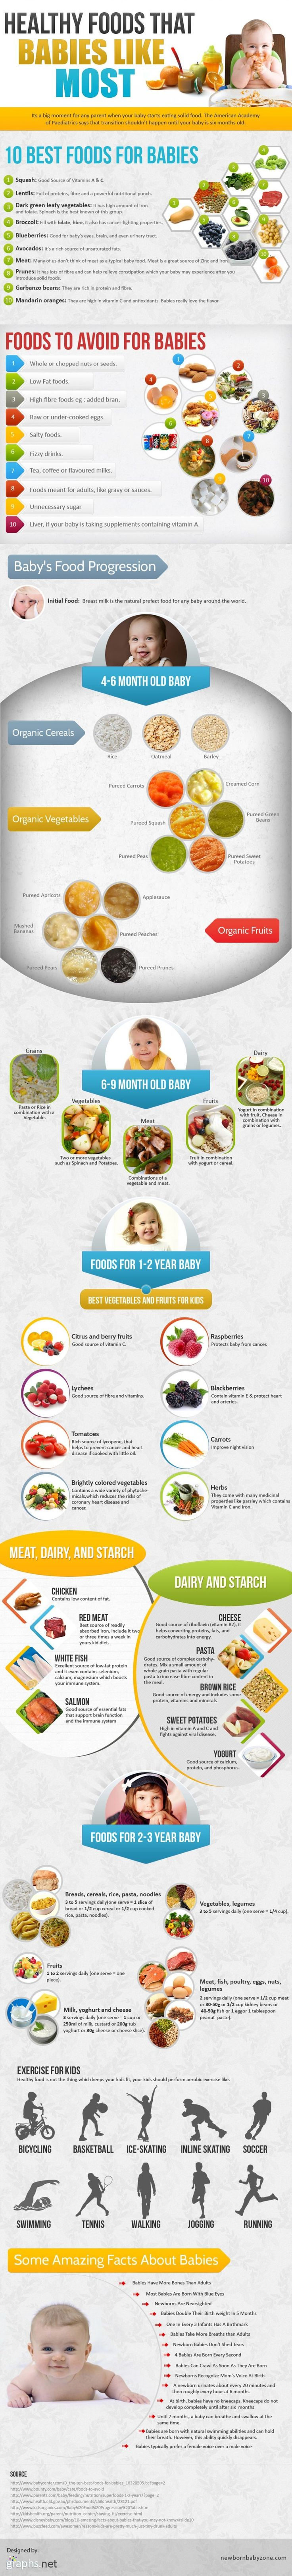 Weight loss boost foods picture 8